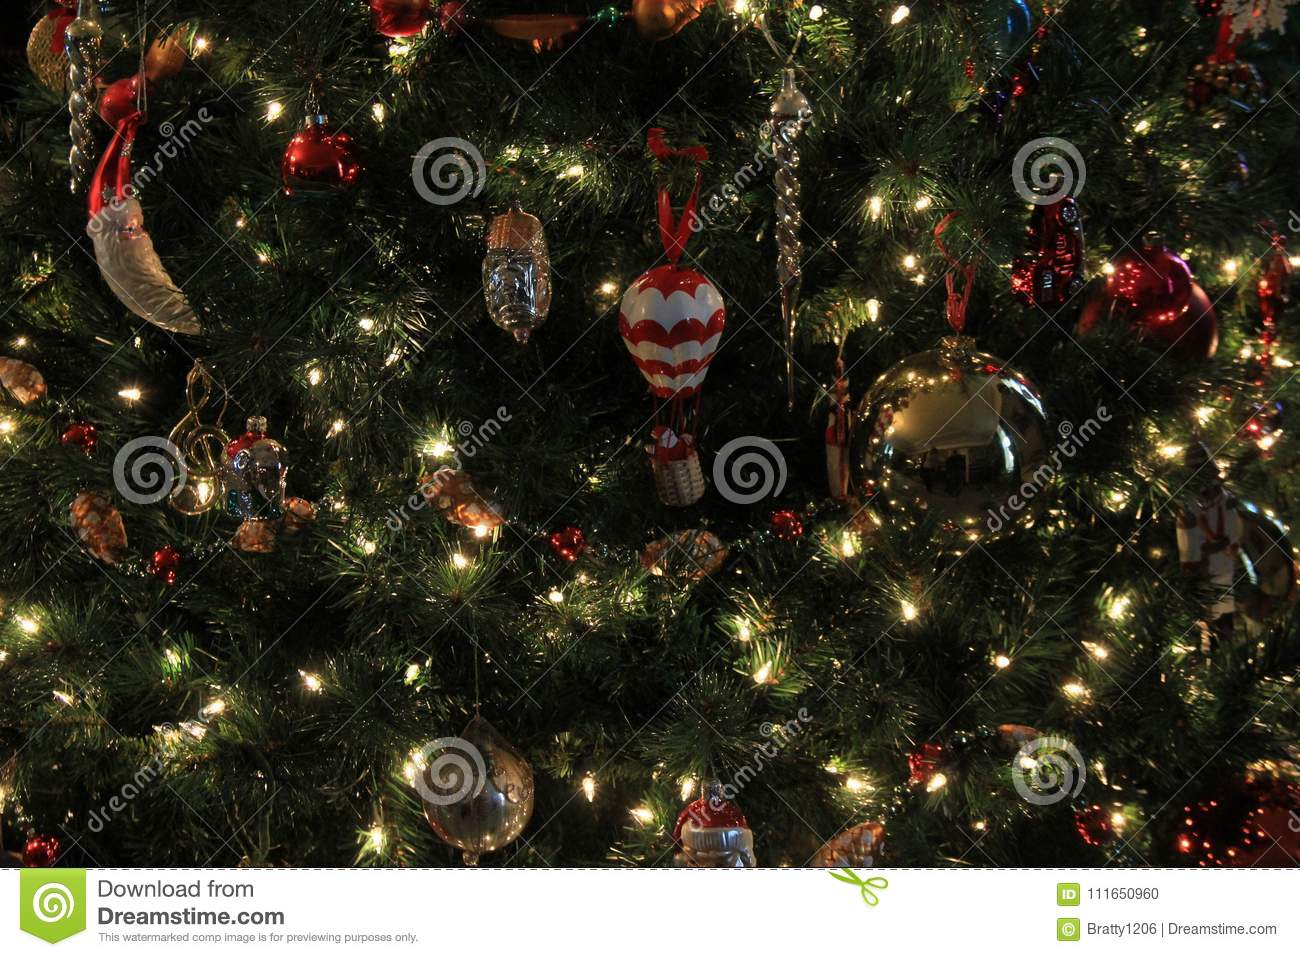 large christmas tree decorated with various ornaments twinking lights throughout branches - Large Christmas Tree Ornaments